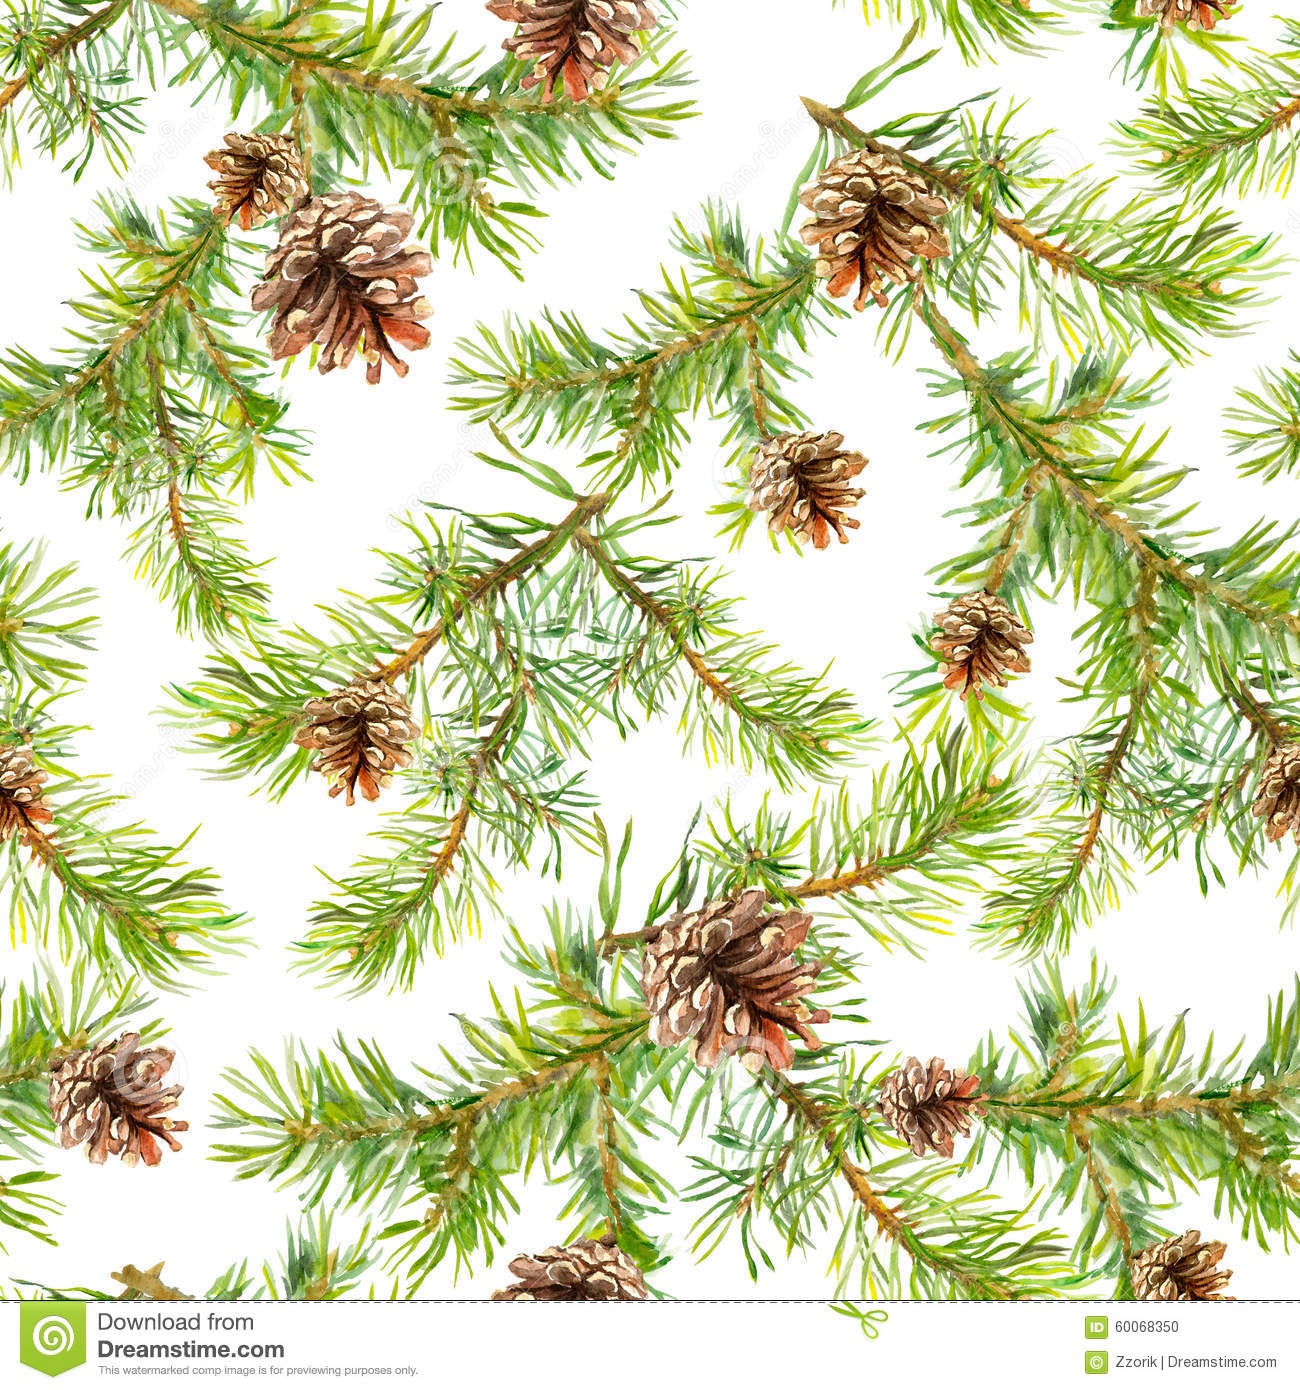 New Year Seamless Pattern With Branches Of Christmas Tree Stock Illustration - Image: 60068350